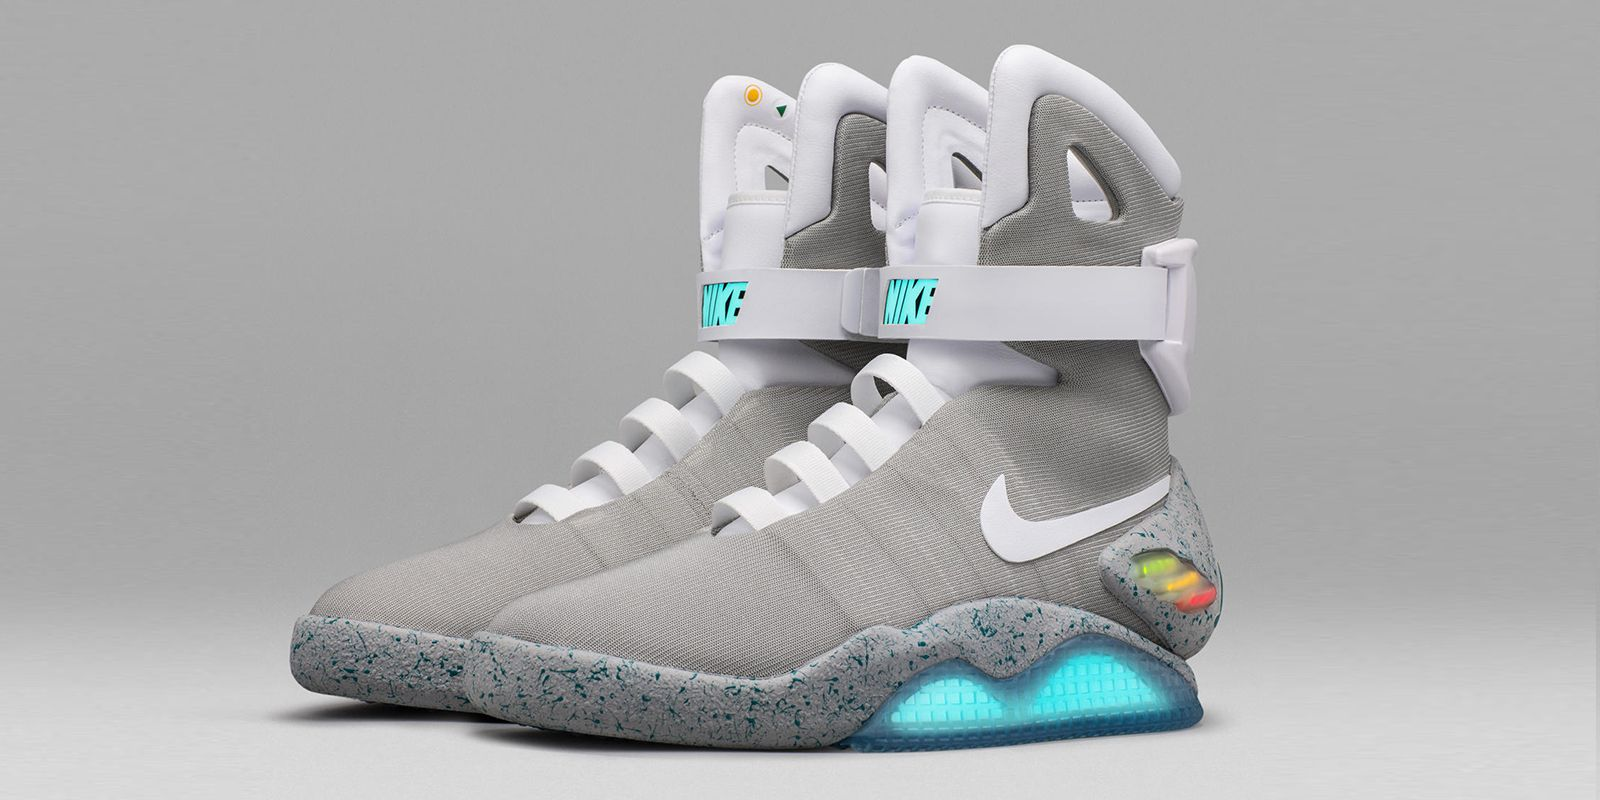 Nike Mags Self Lacing Shoes for $10 Donation to Michael J Fox Foundation  2018